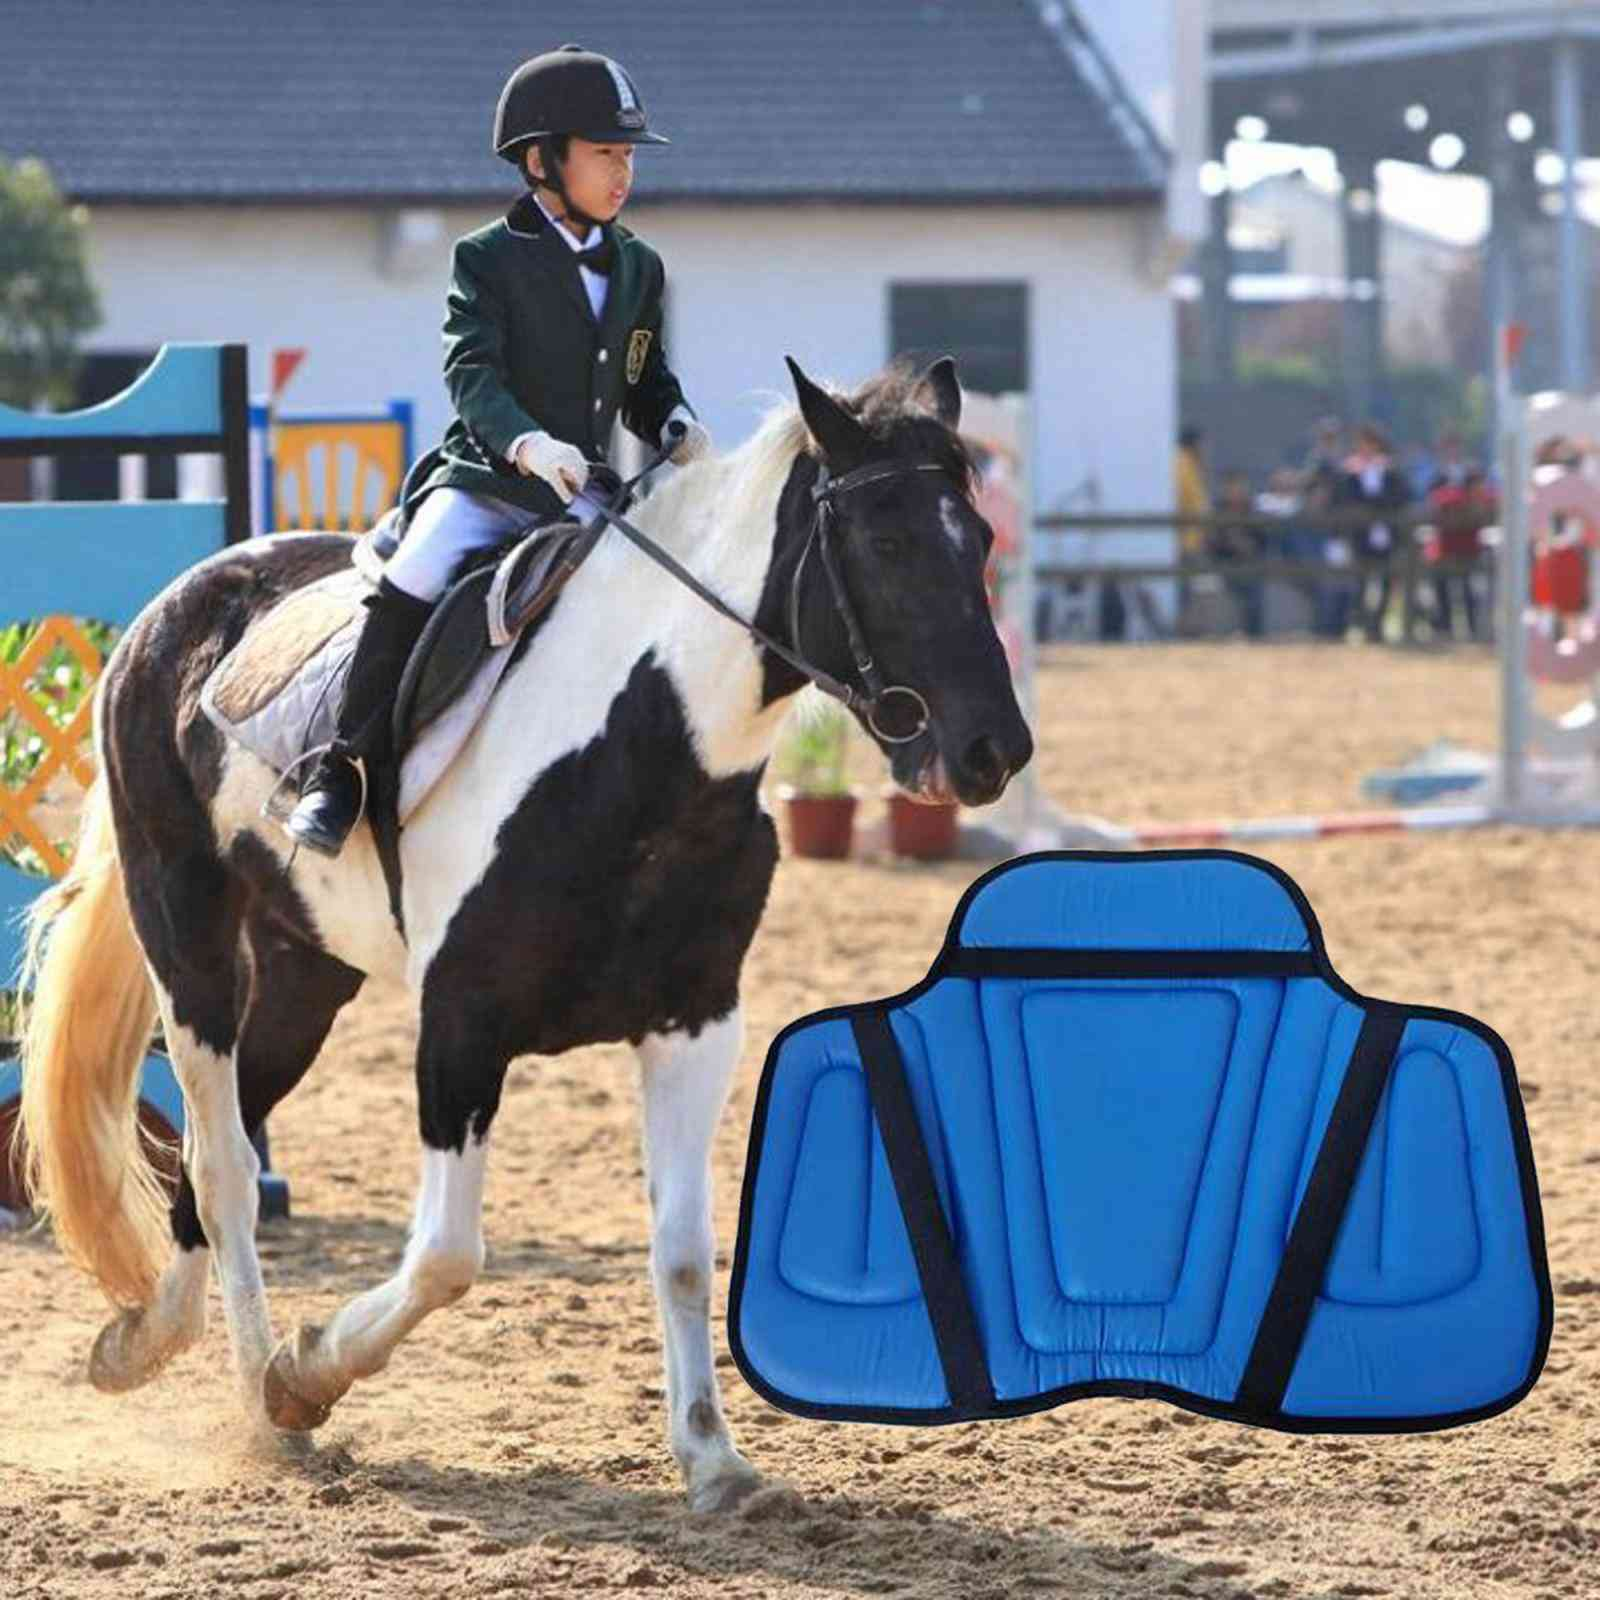 Equestrian Riding Saddle Pad Shock Absorption Seat Cushion Wear-resistant